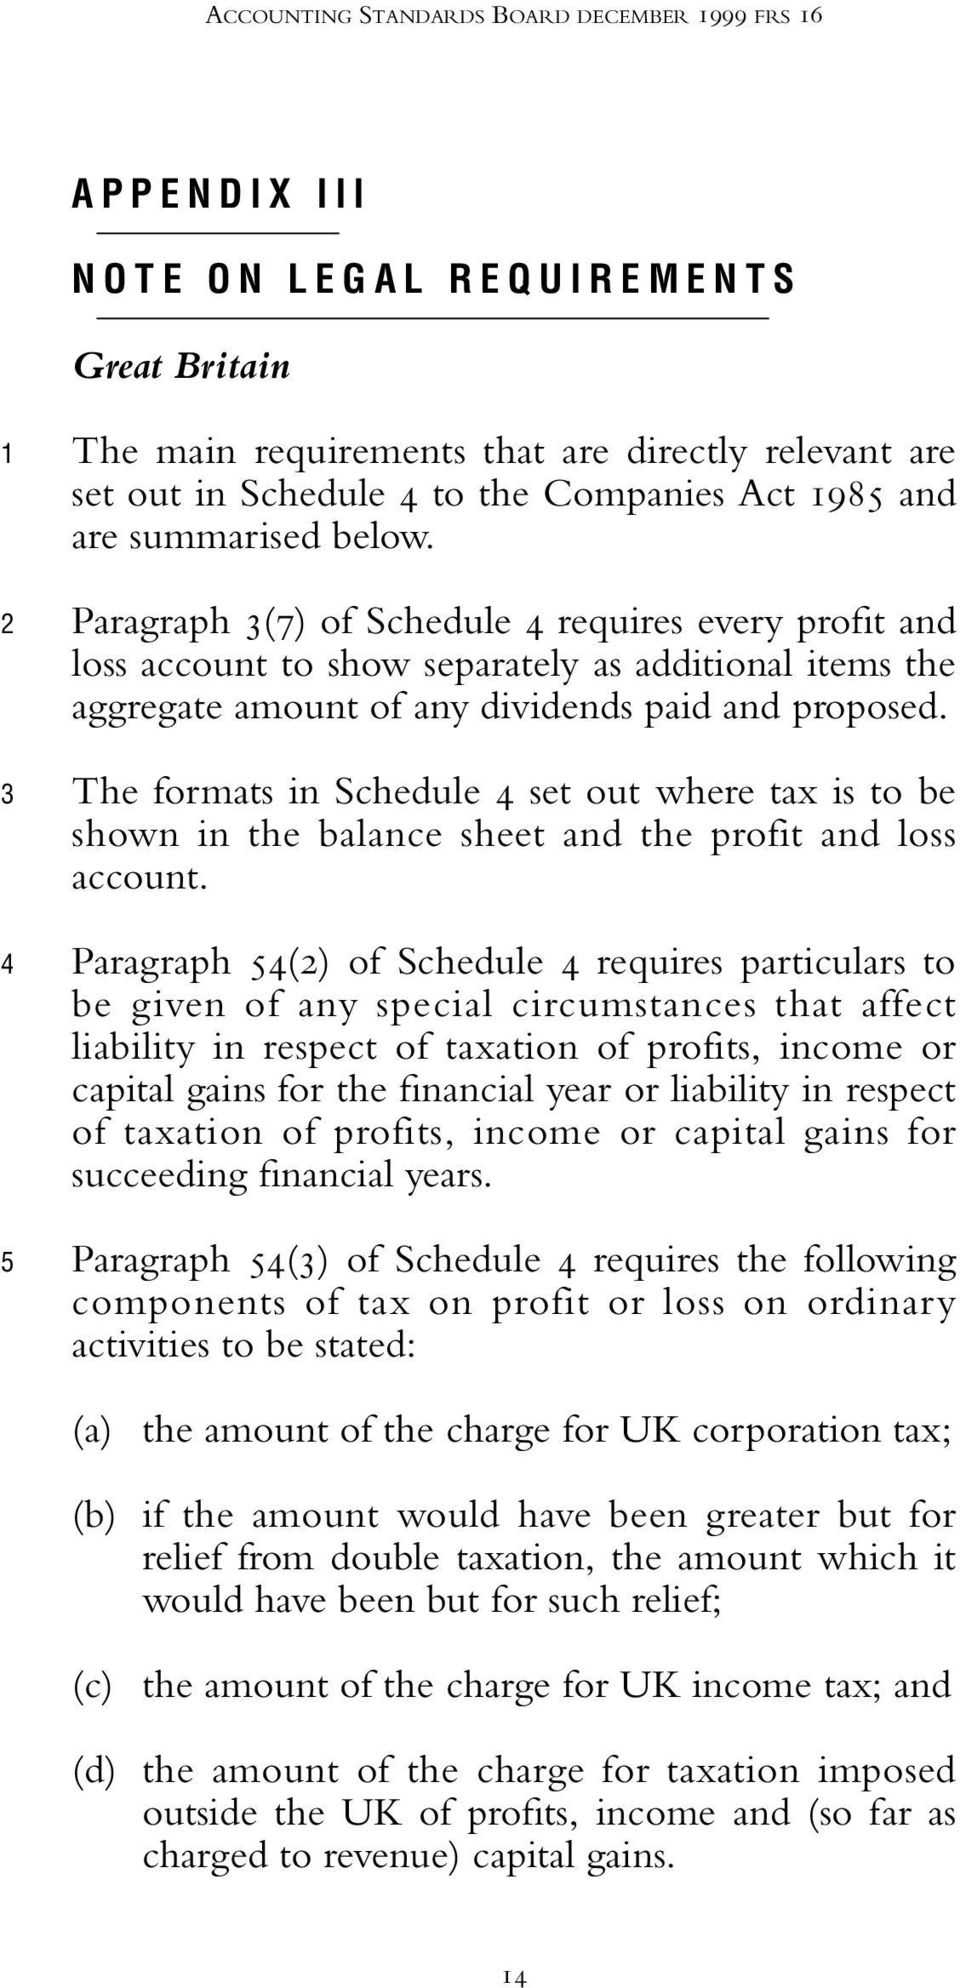 Paragraph 3(7) of Schedule 4 requires every profit and loss account to show separately as additional items the aggregate amount of any dividends paid and proposed.